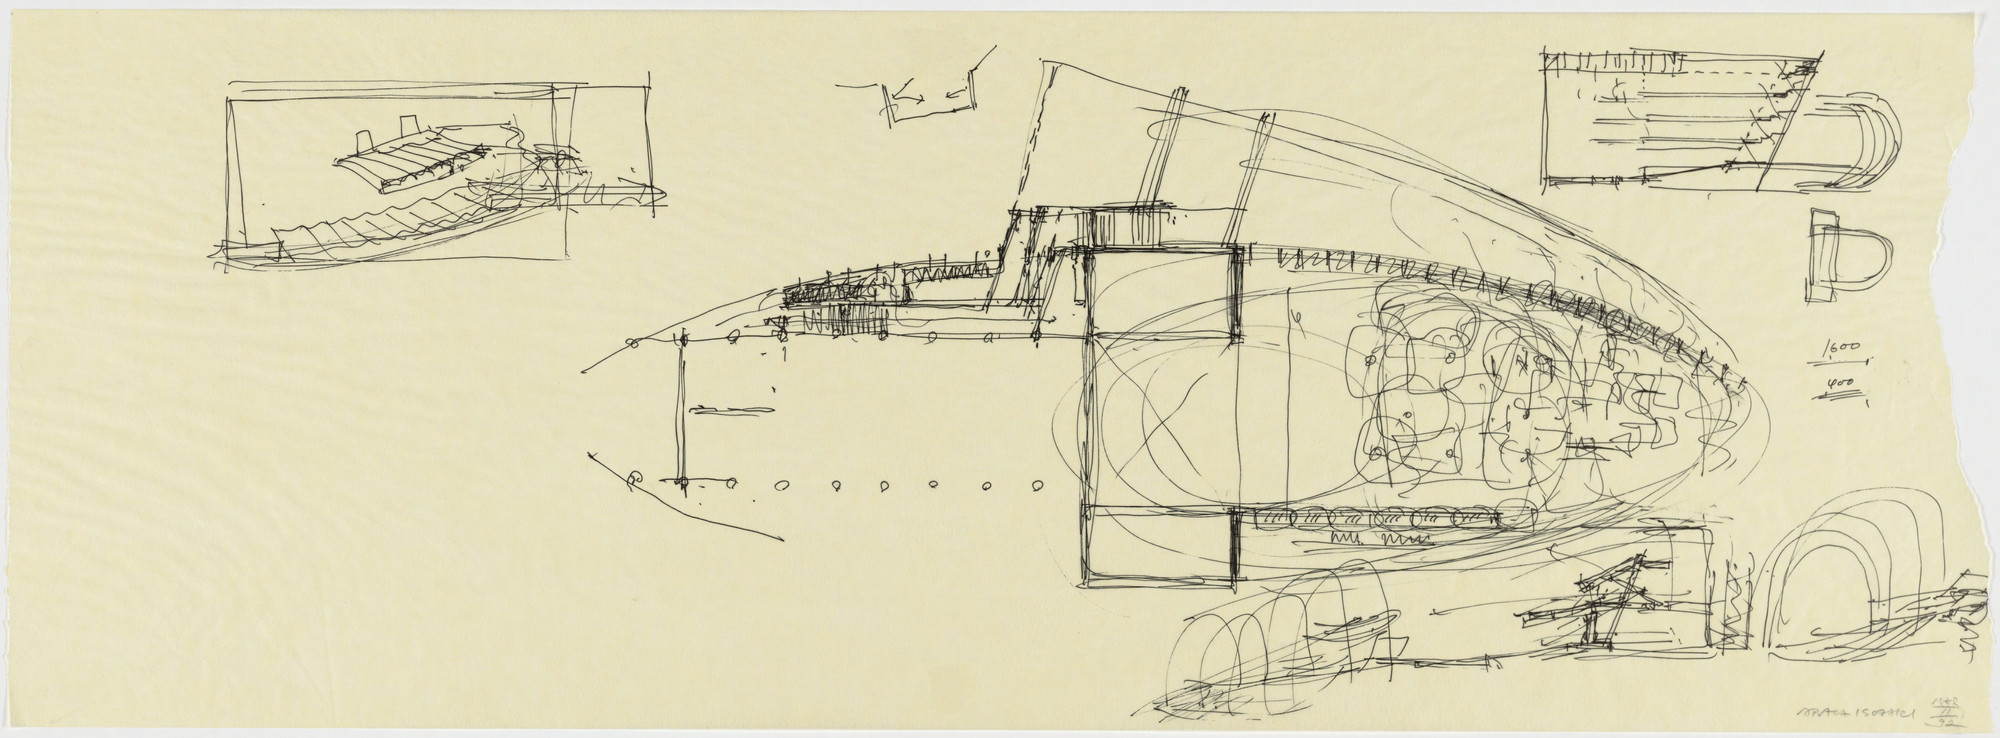 Arata Isozaki. Nara Convention Hall, Nara, Japan, Sketches of main hall. 1992